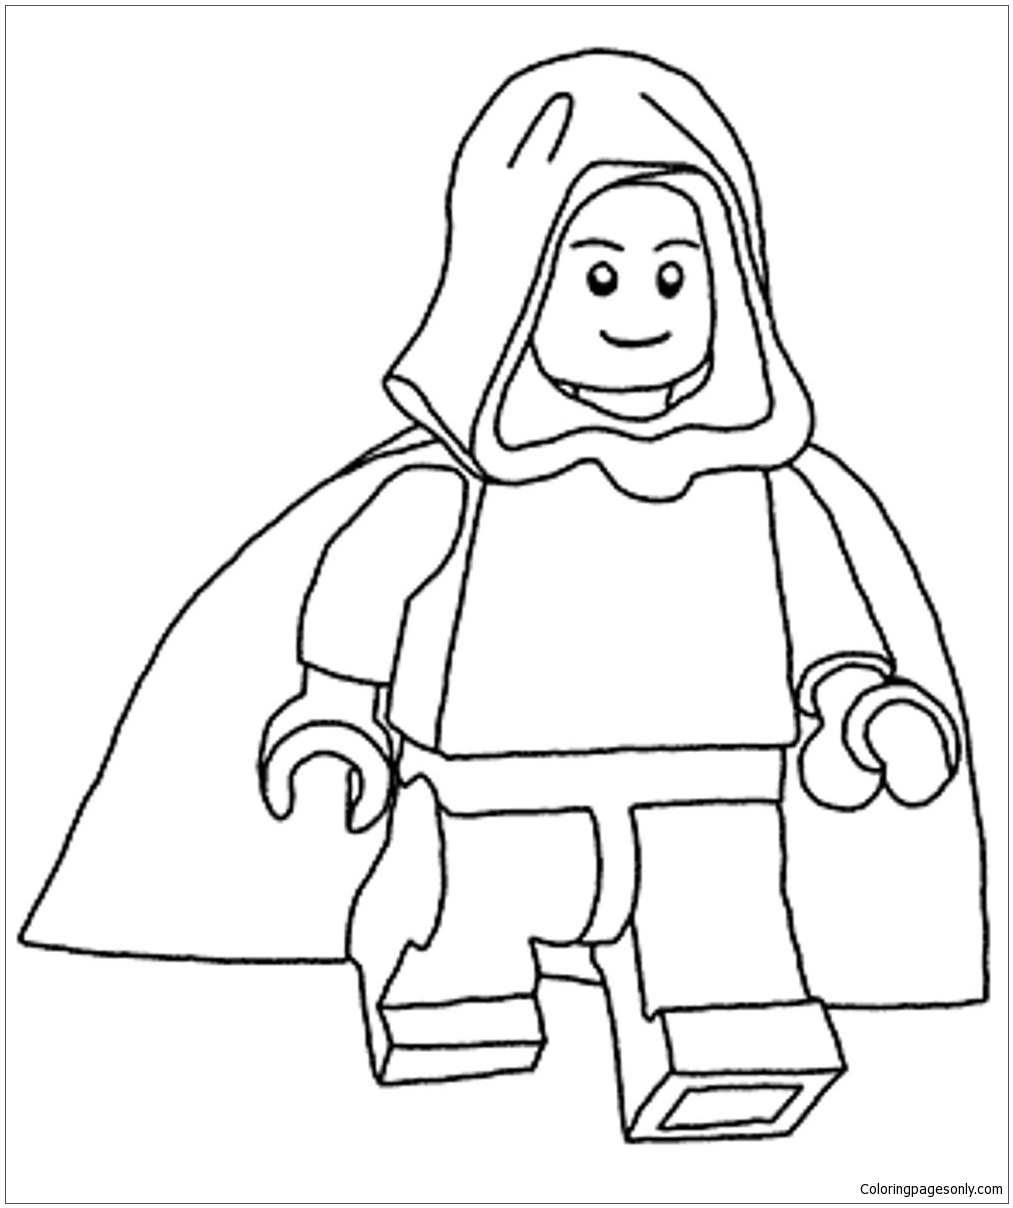 Lego Star Wars 12 Coloring Page - Free Coloring Pages Online | 1208x1013